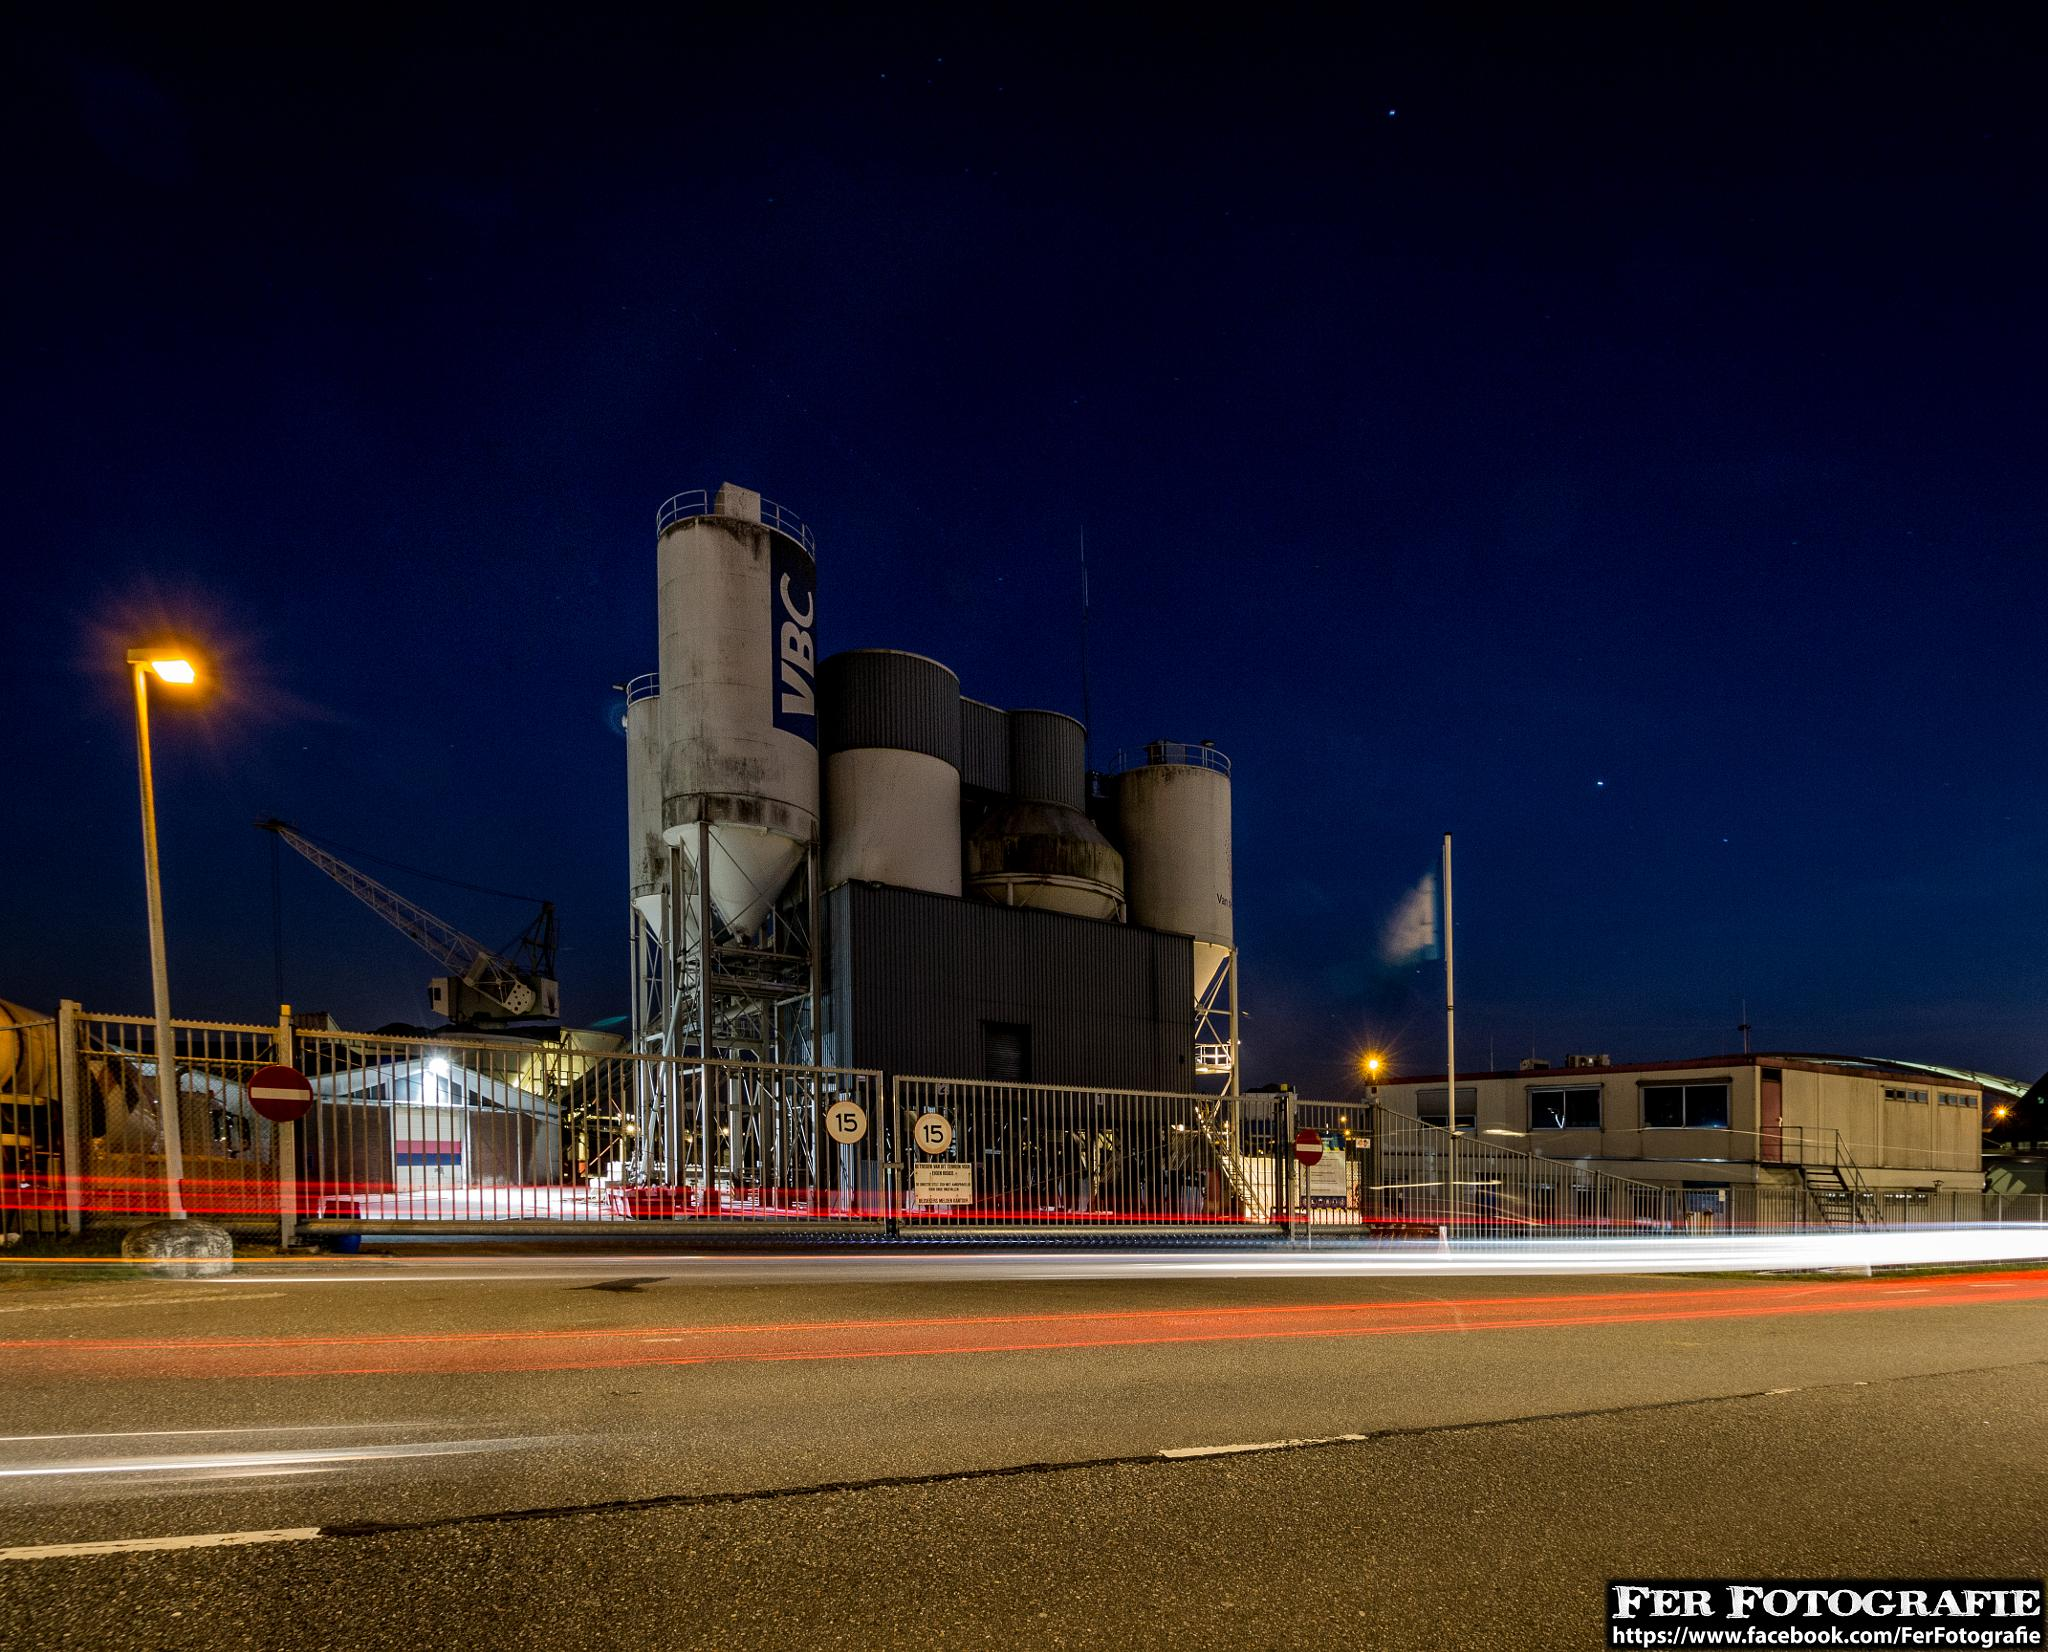 Night Photo from a sand fill station (Rotterdam) by Fer Herwaarden